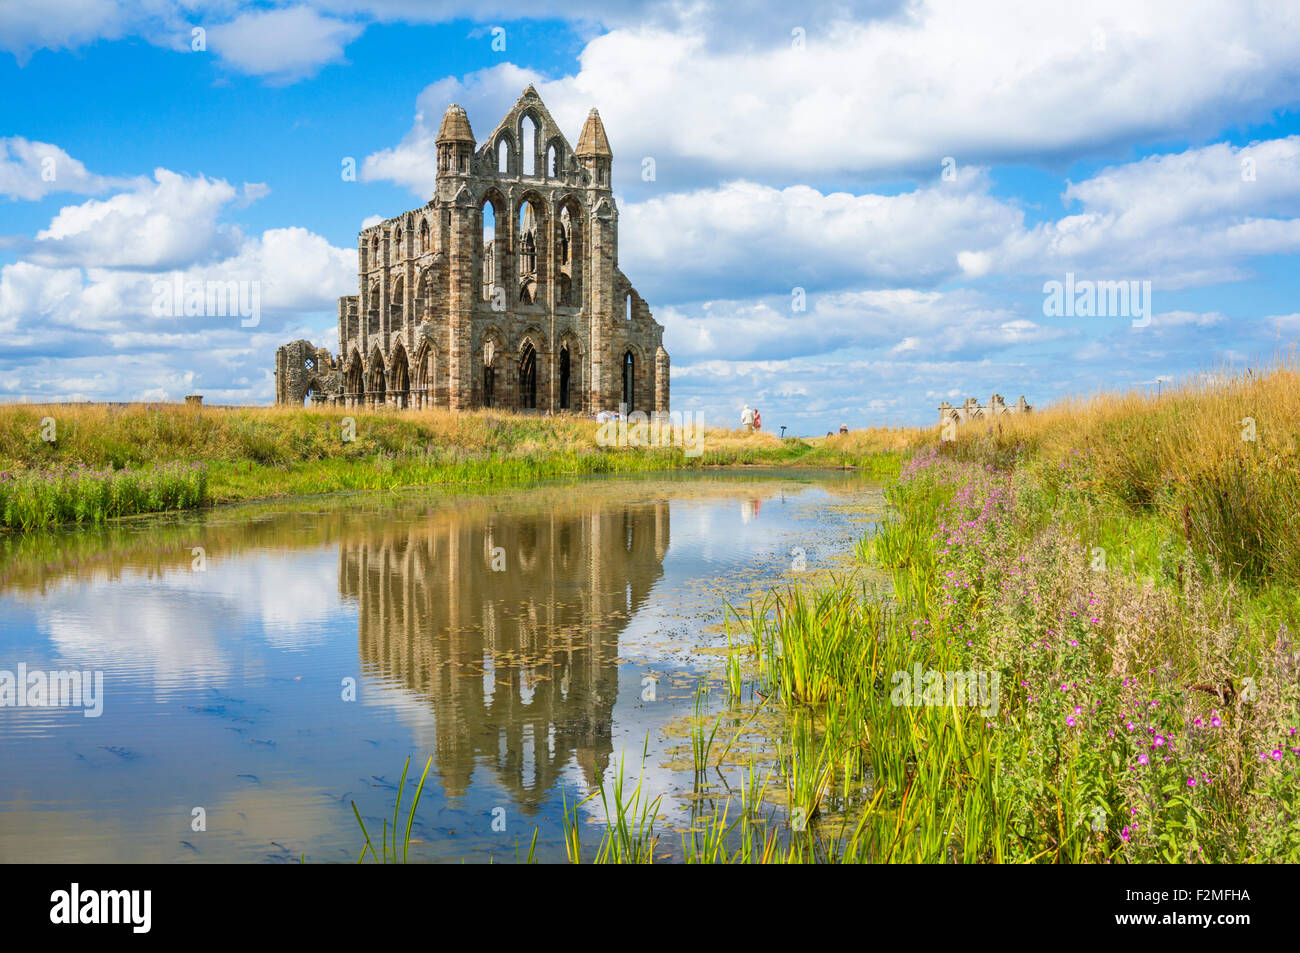 Whitby abbey ruins with reflections in a small still pool Whitby Norjavascriptth Yorkshire England Great Britain - Stock Image